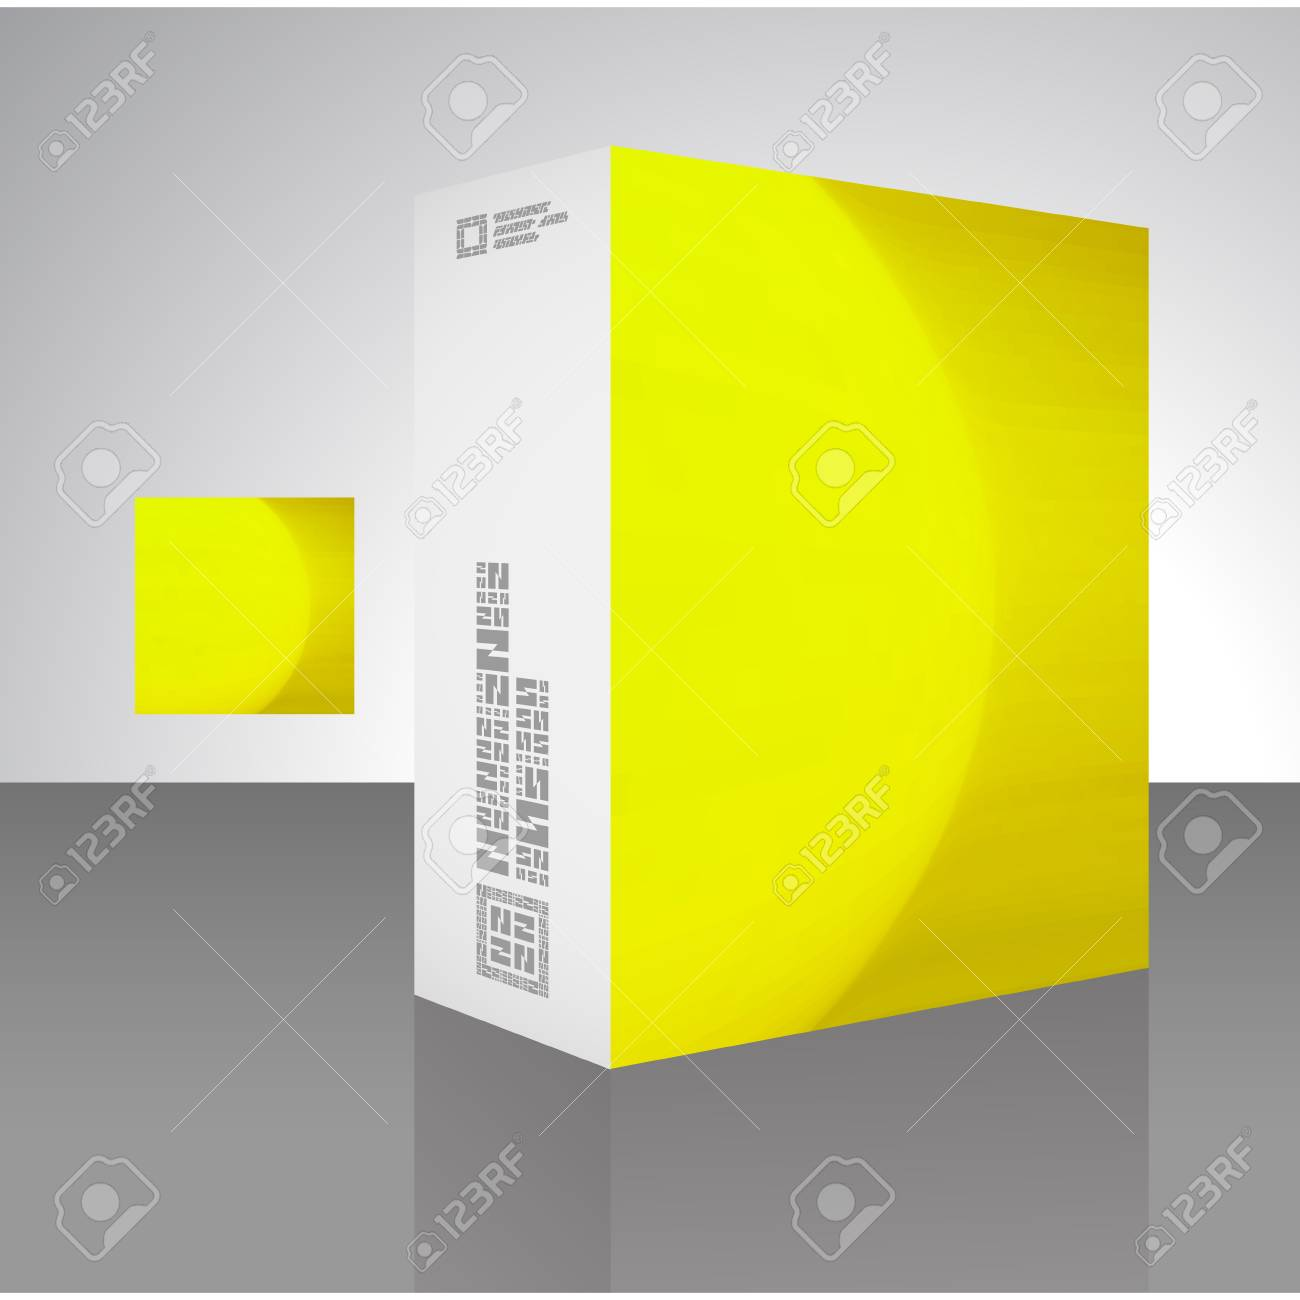 Packaging box Stock Vector - 17390602